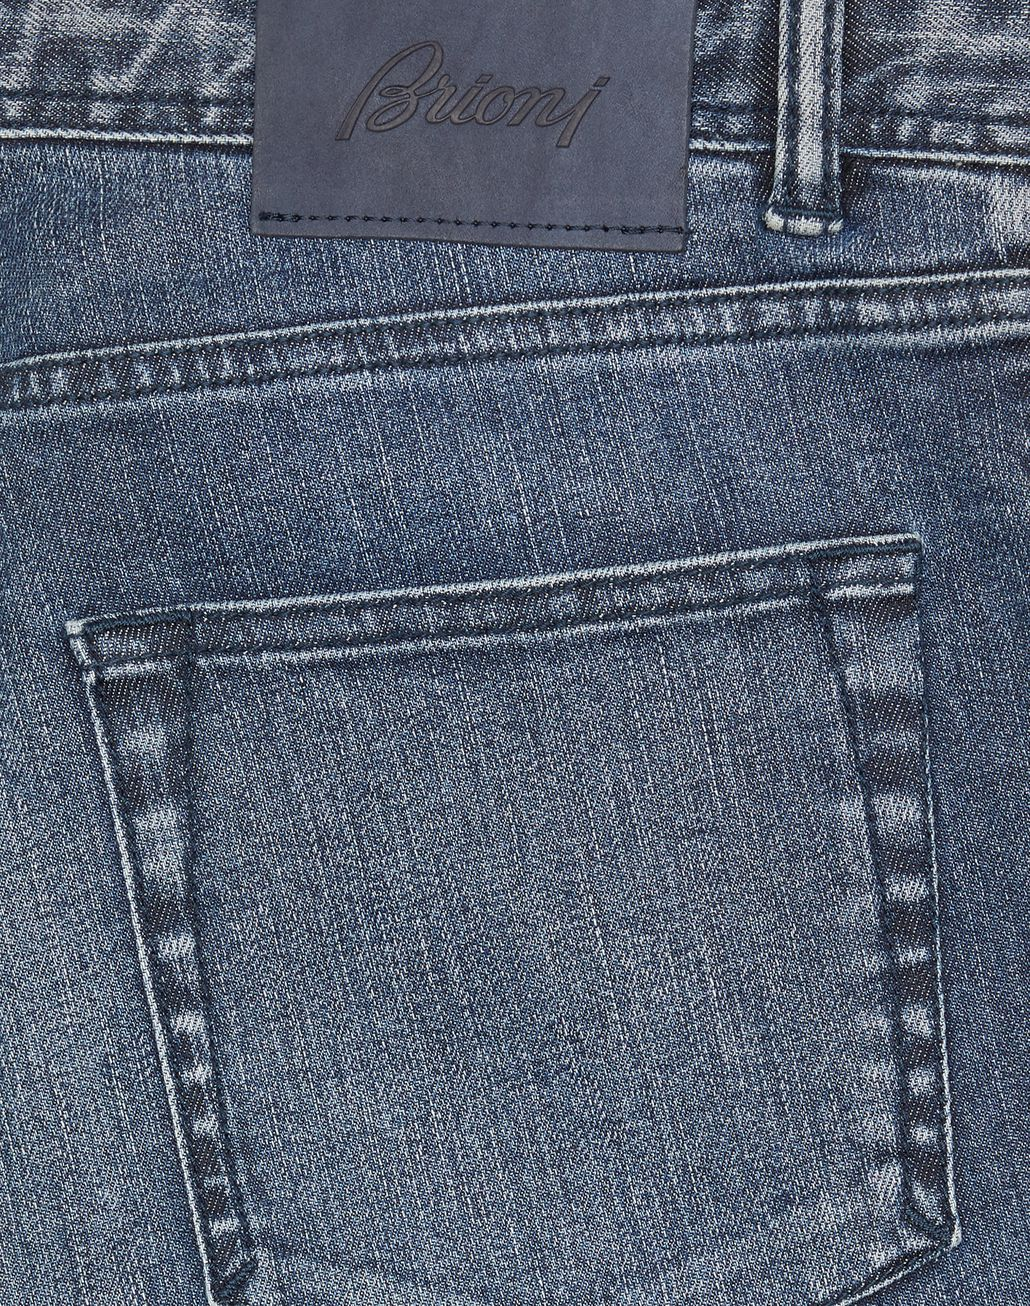 BRIONI Jeans Meribel Blu Navy Denim Uomo e